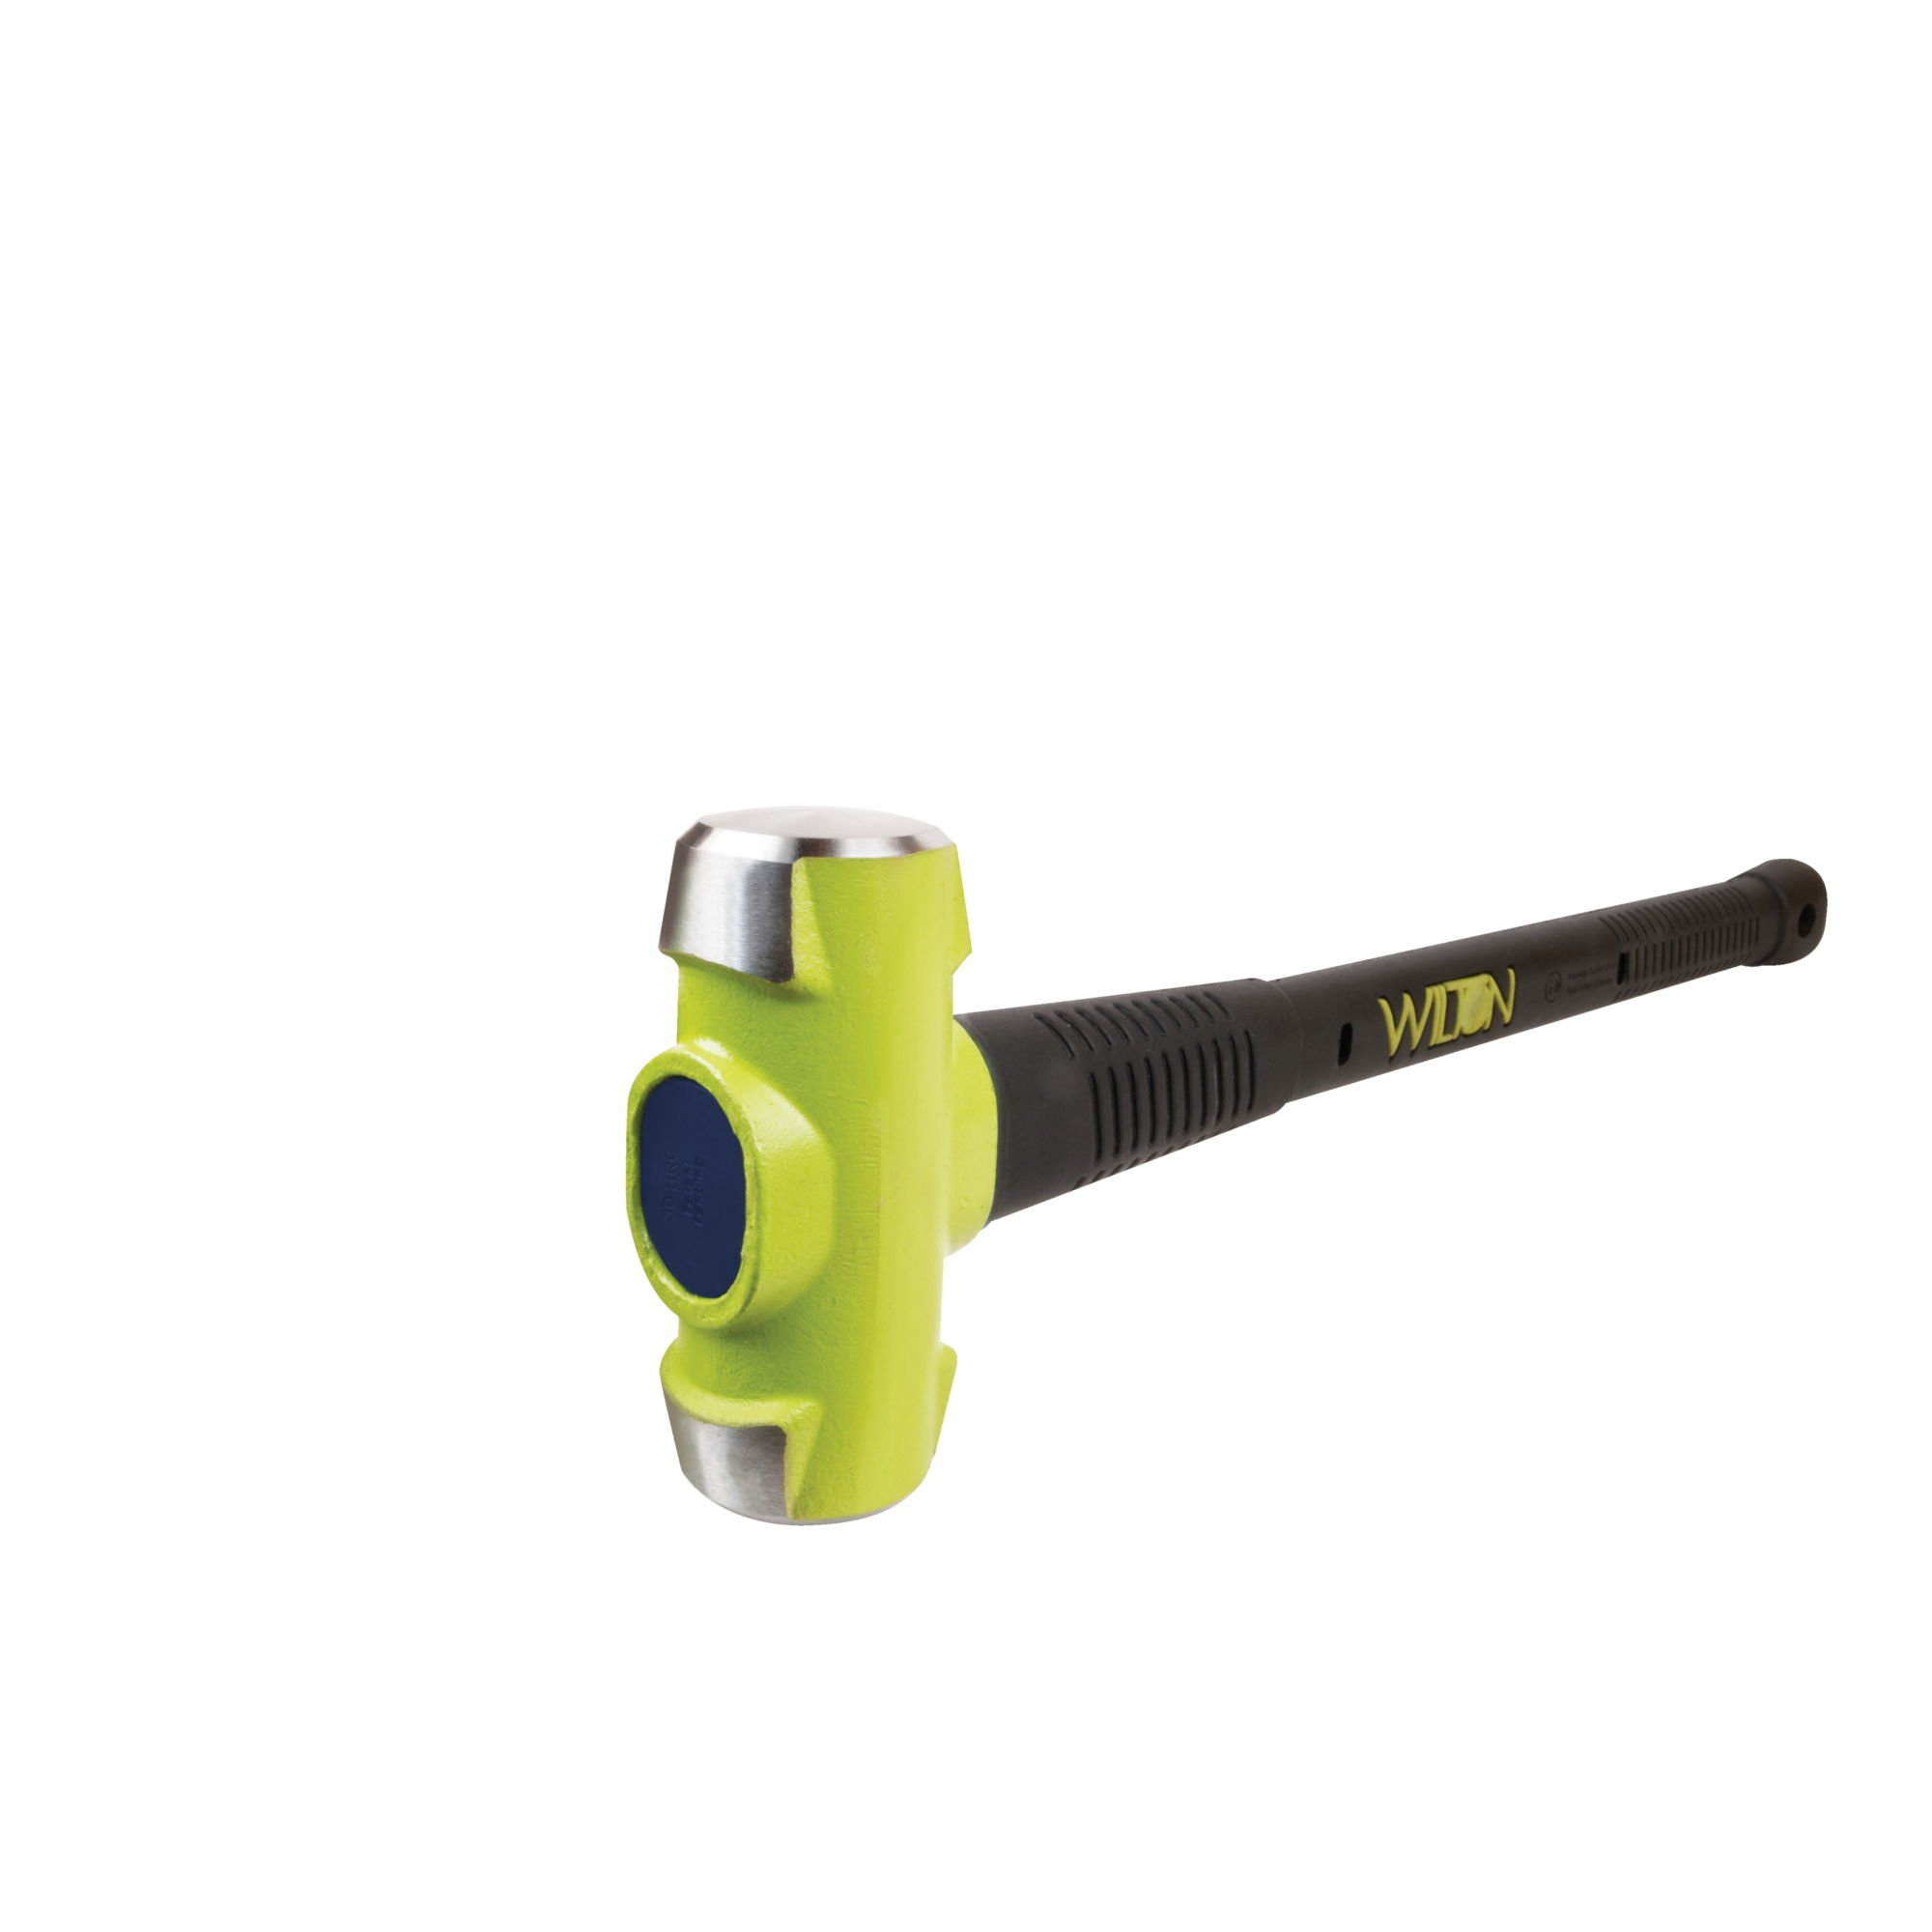 Wilton 41236 12 lb. BASH Soft Face Sledge Hammer with 36-in Unbreakable Handle